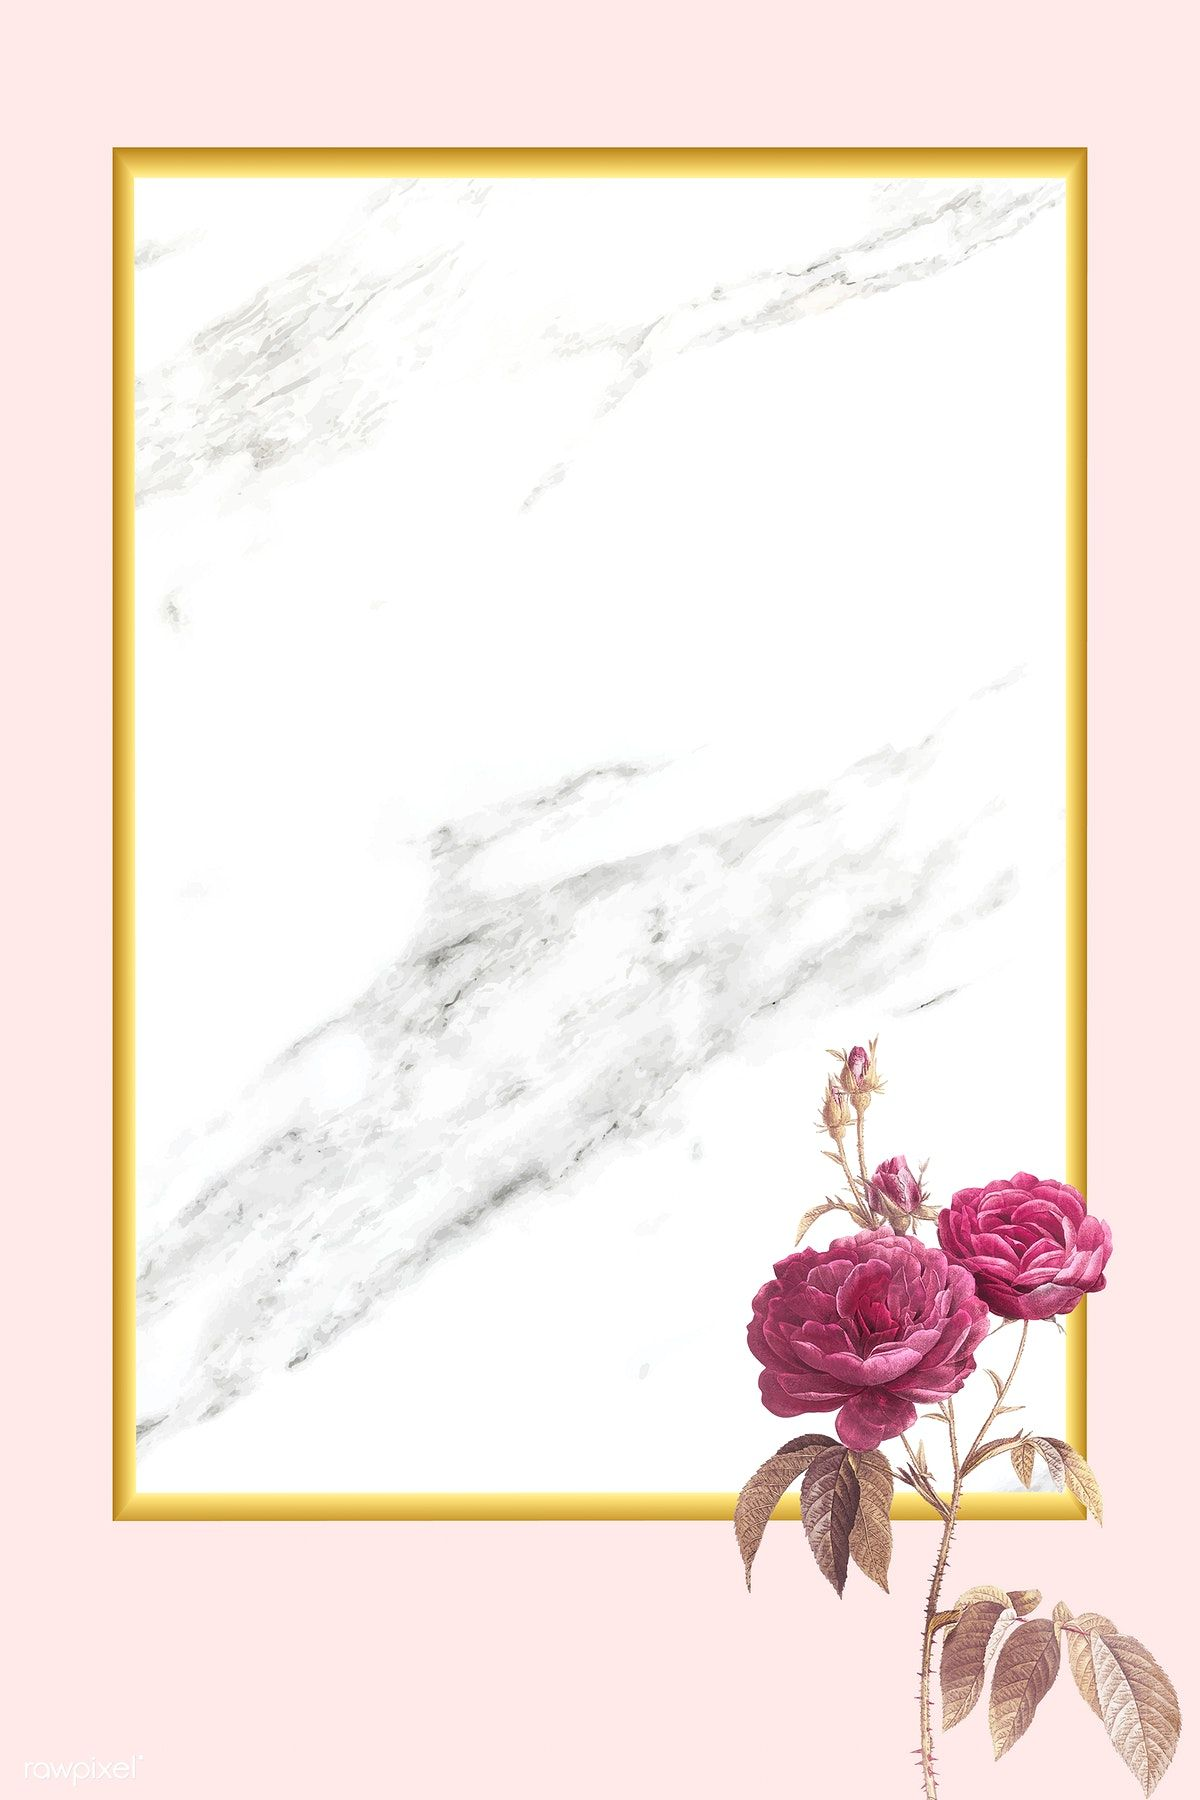 Download premium vector of Pink rose element on marble